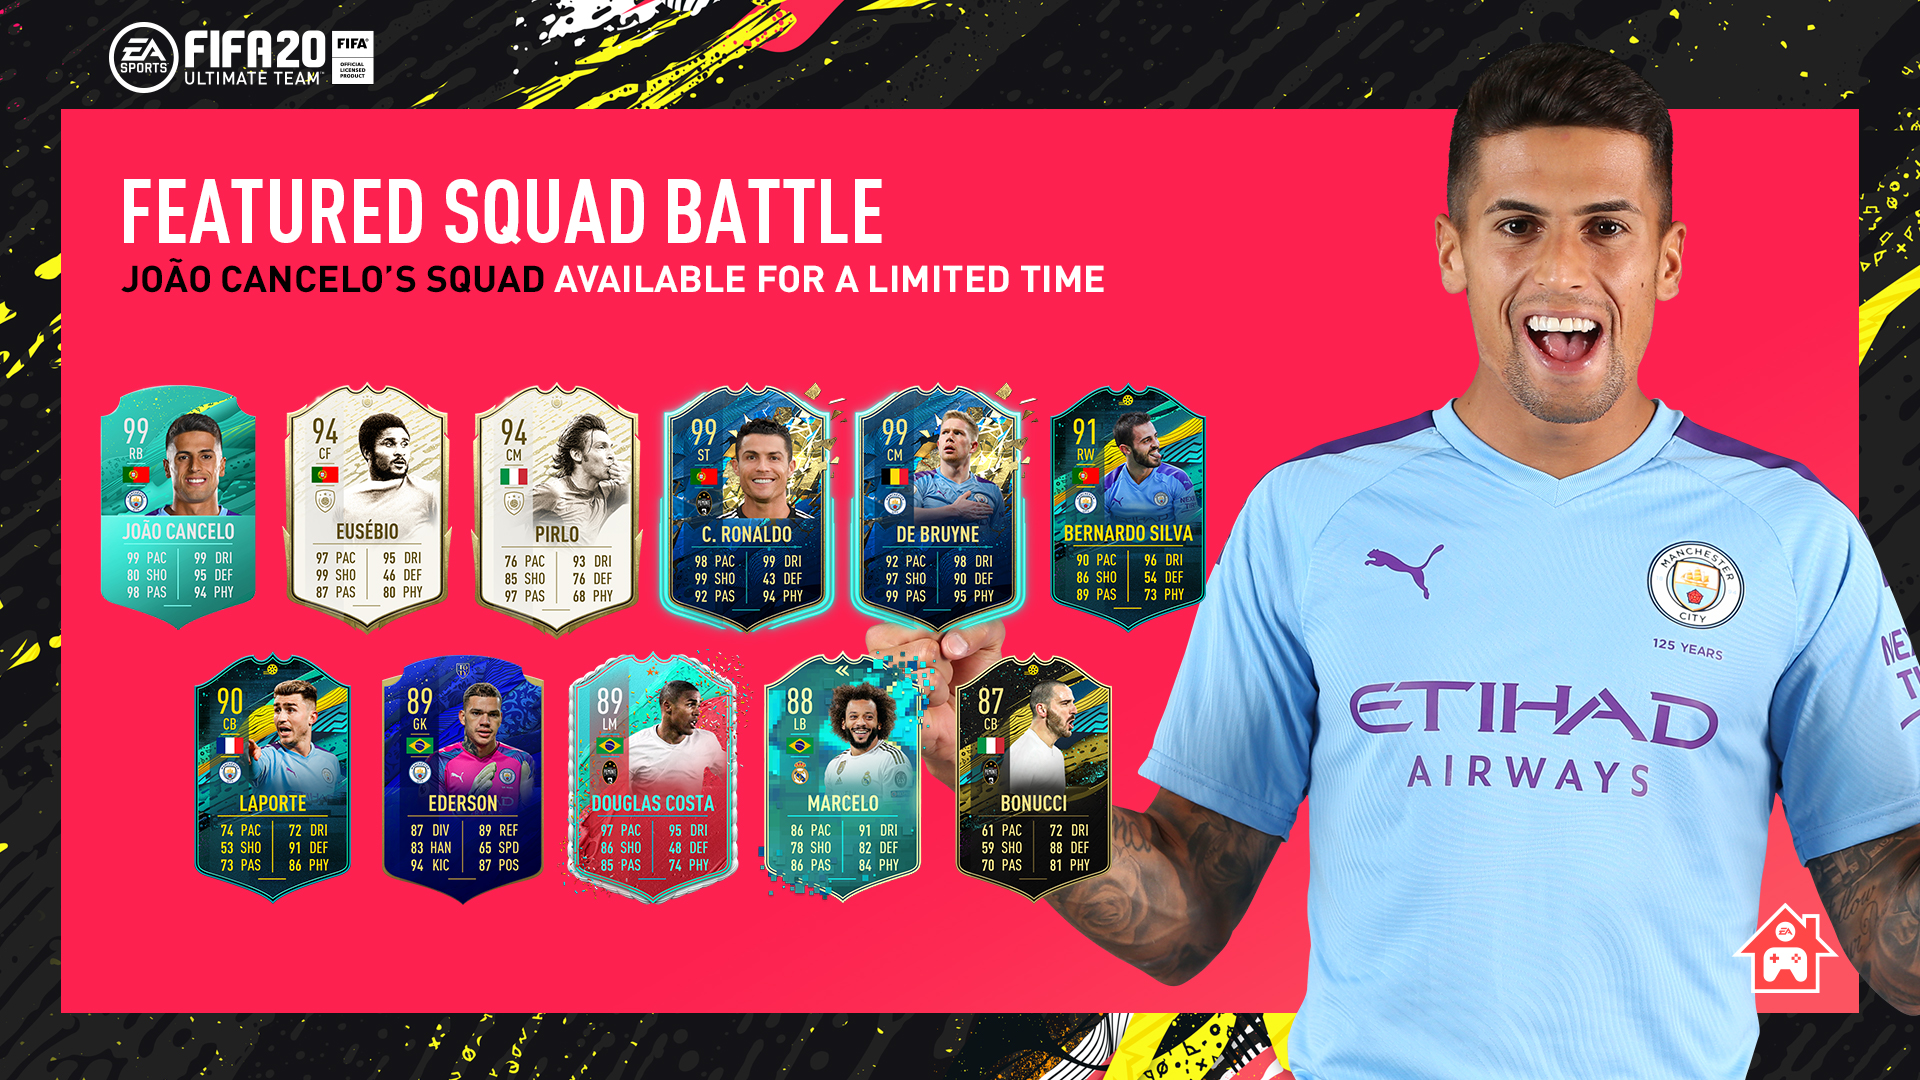 Think you've got a chance against Joao Cancelo's squad on #FIFA20? 🔥🎮  Cancelo's Featured Squad Battle is available in-game now!  ⚽️ @EASPORTSFIFA #FUT20 🔵 #ManCity https://t.co/O3jUGVFqyA